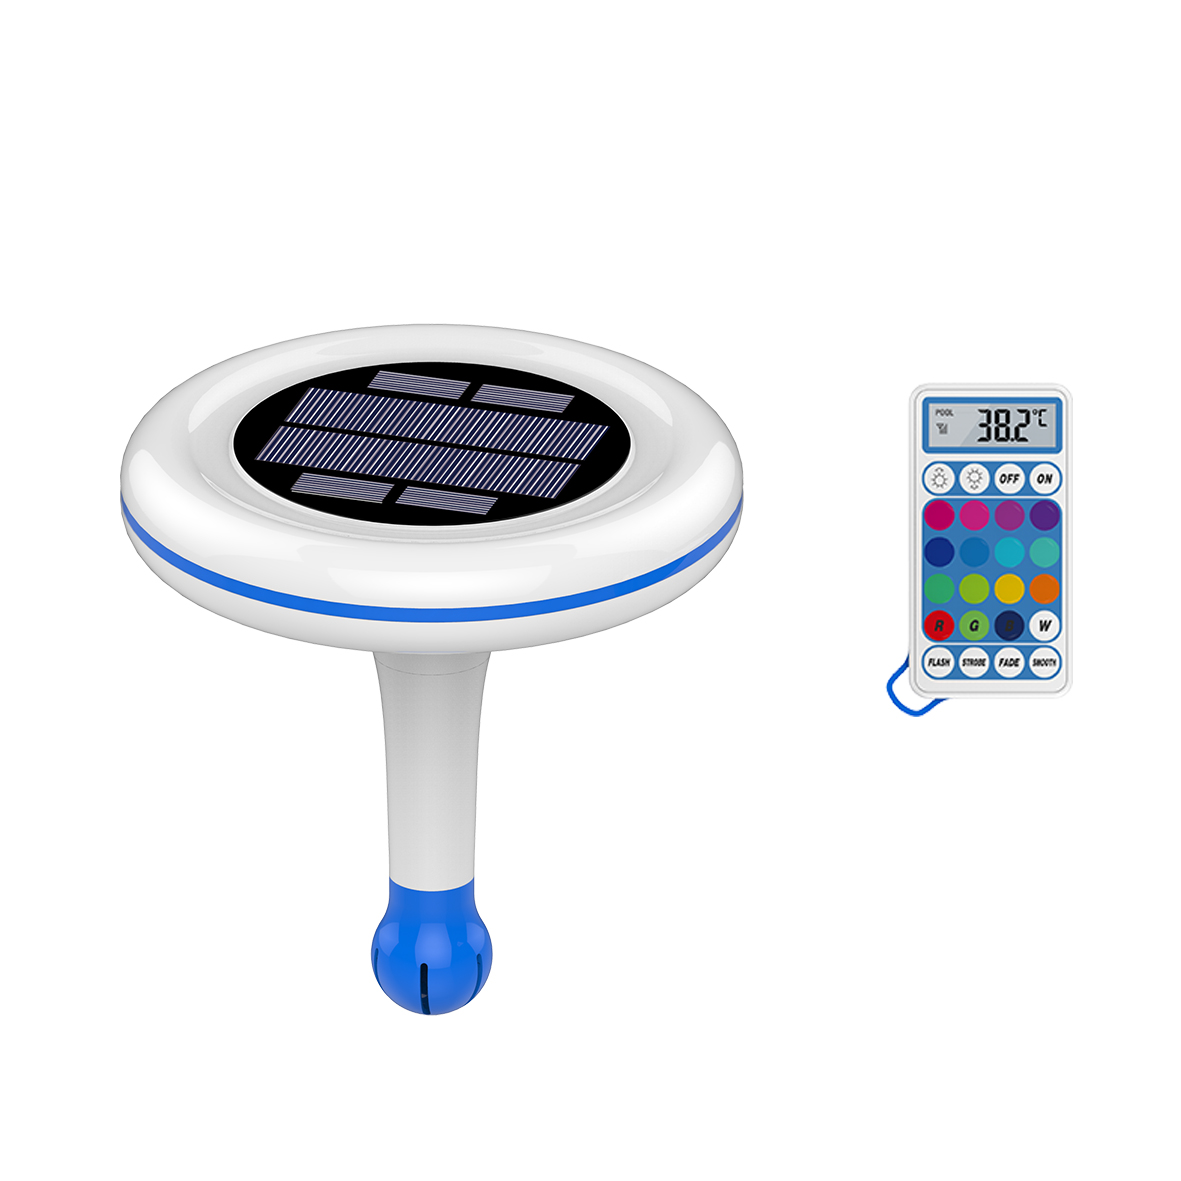 Solar Pool Light and Wireless Thermomete